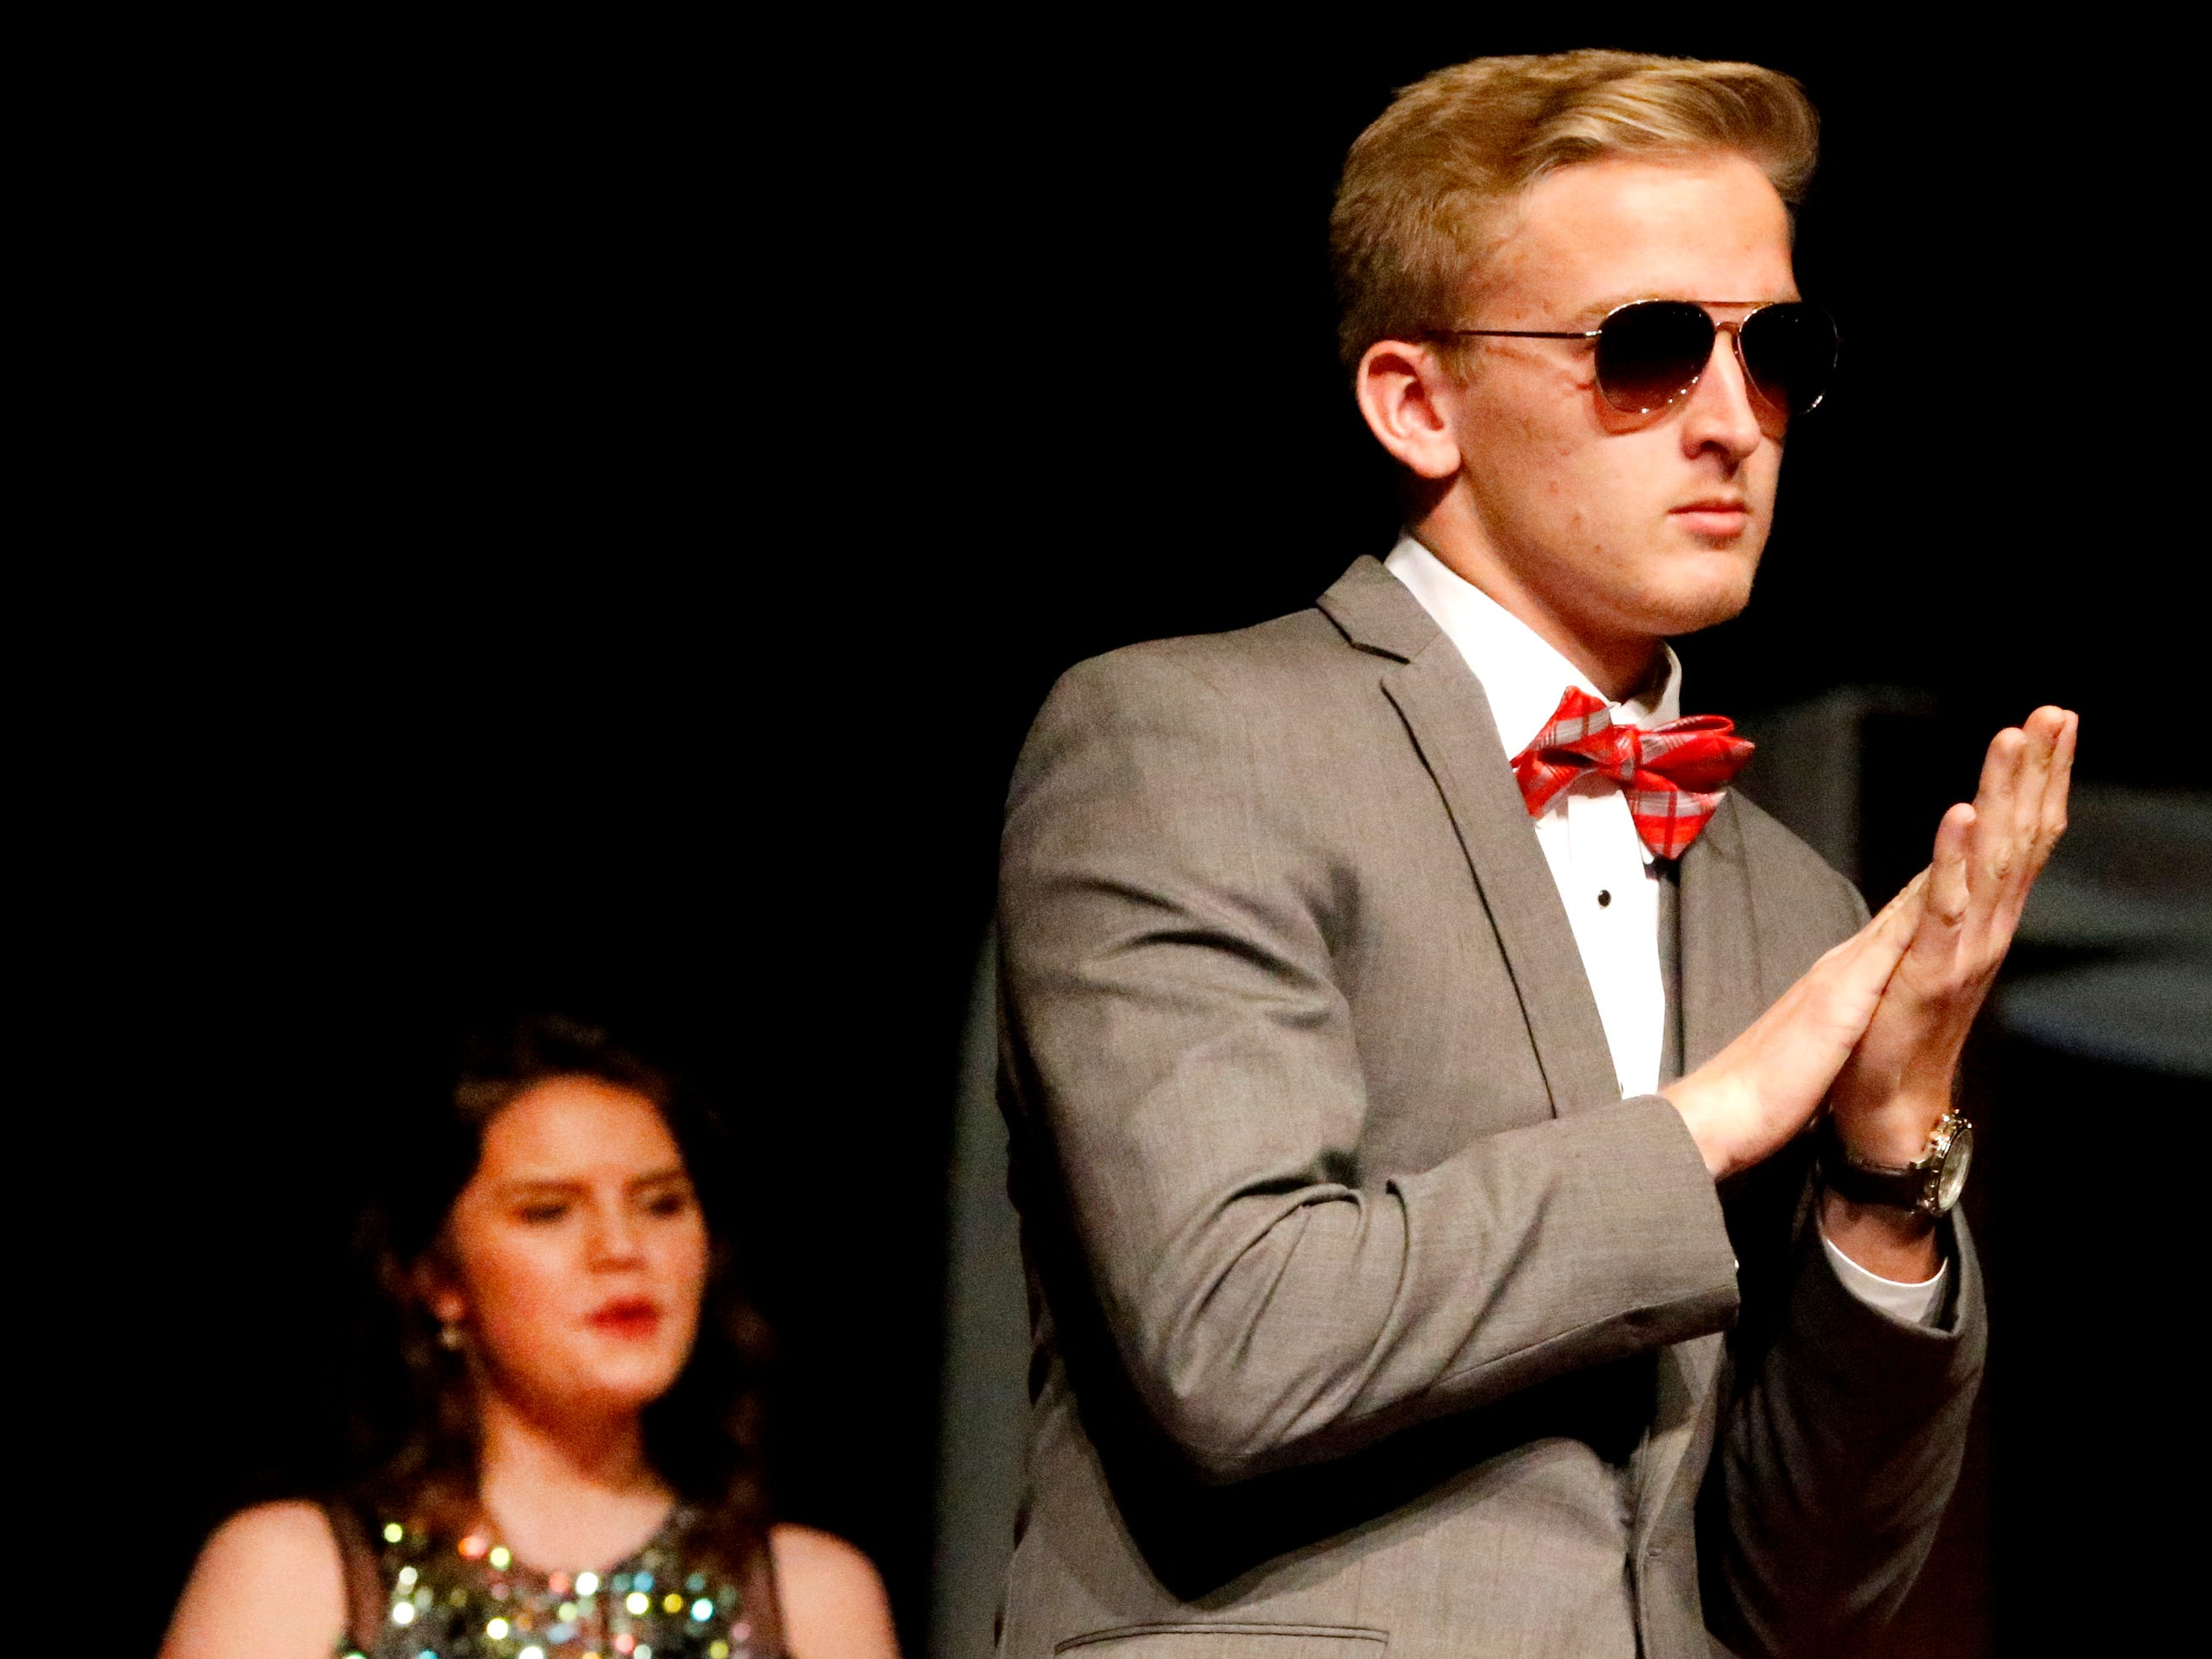 Jaden Lasley shows off his tux at the end of the runway during the Siegel Prom Fashion show on Thursday, Feb. 14, 2019.